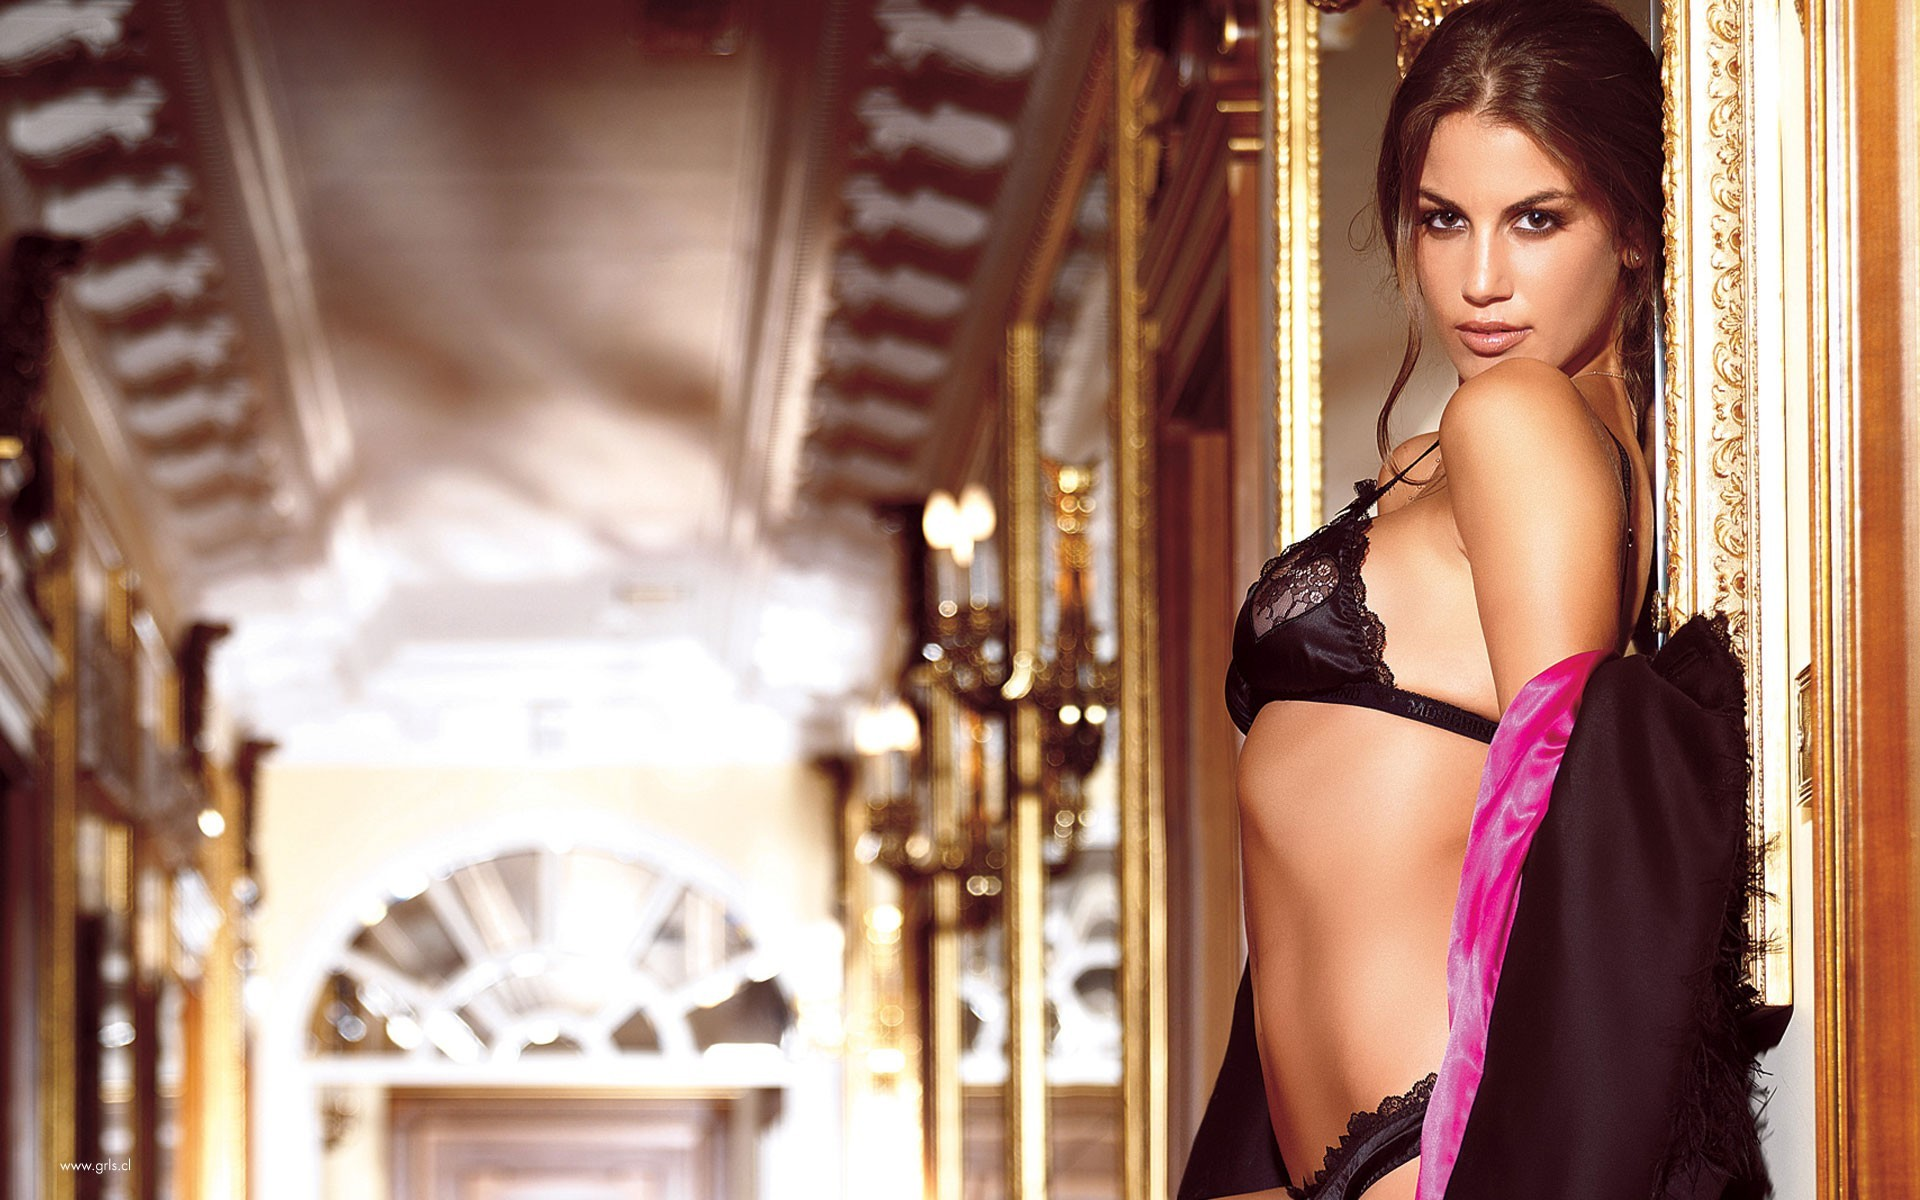 lingerie brunettes woman bra HD Wallpaper